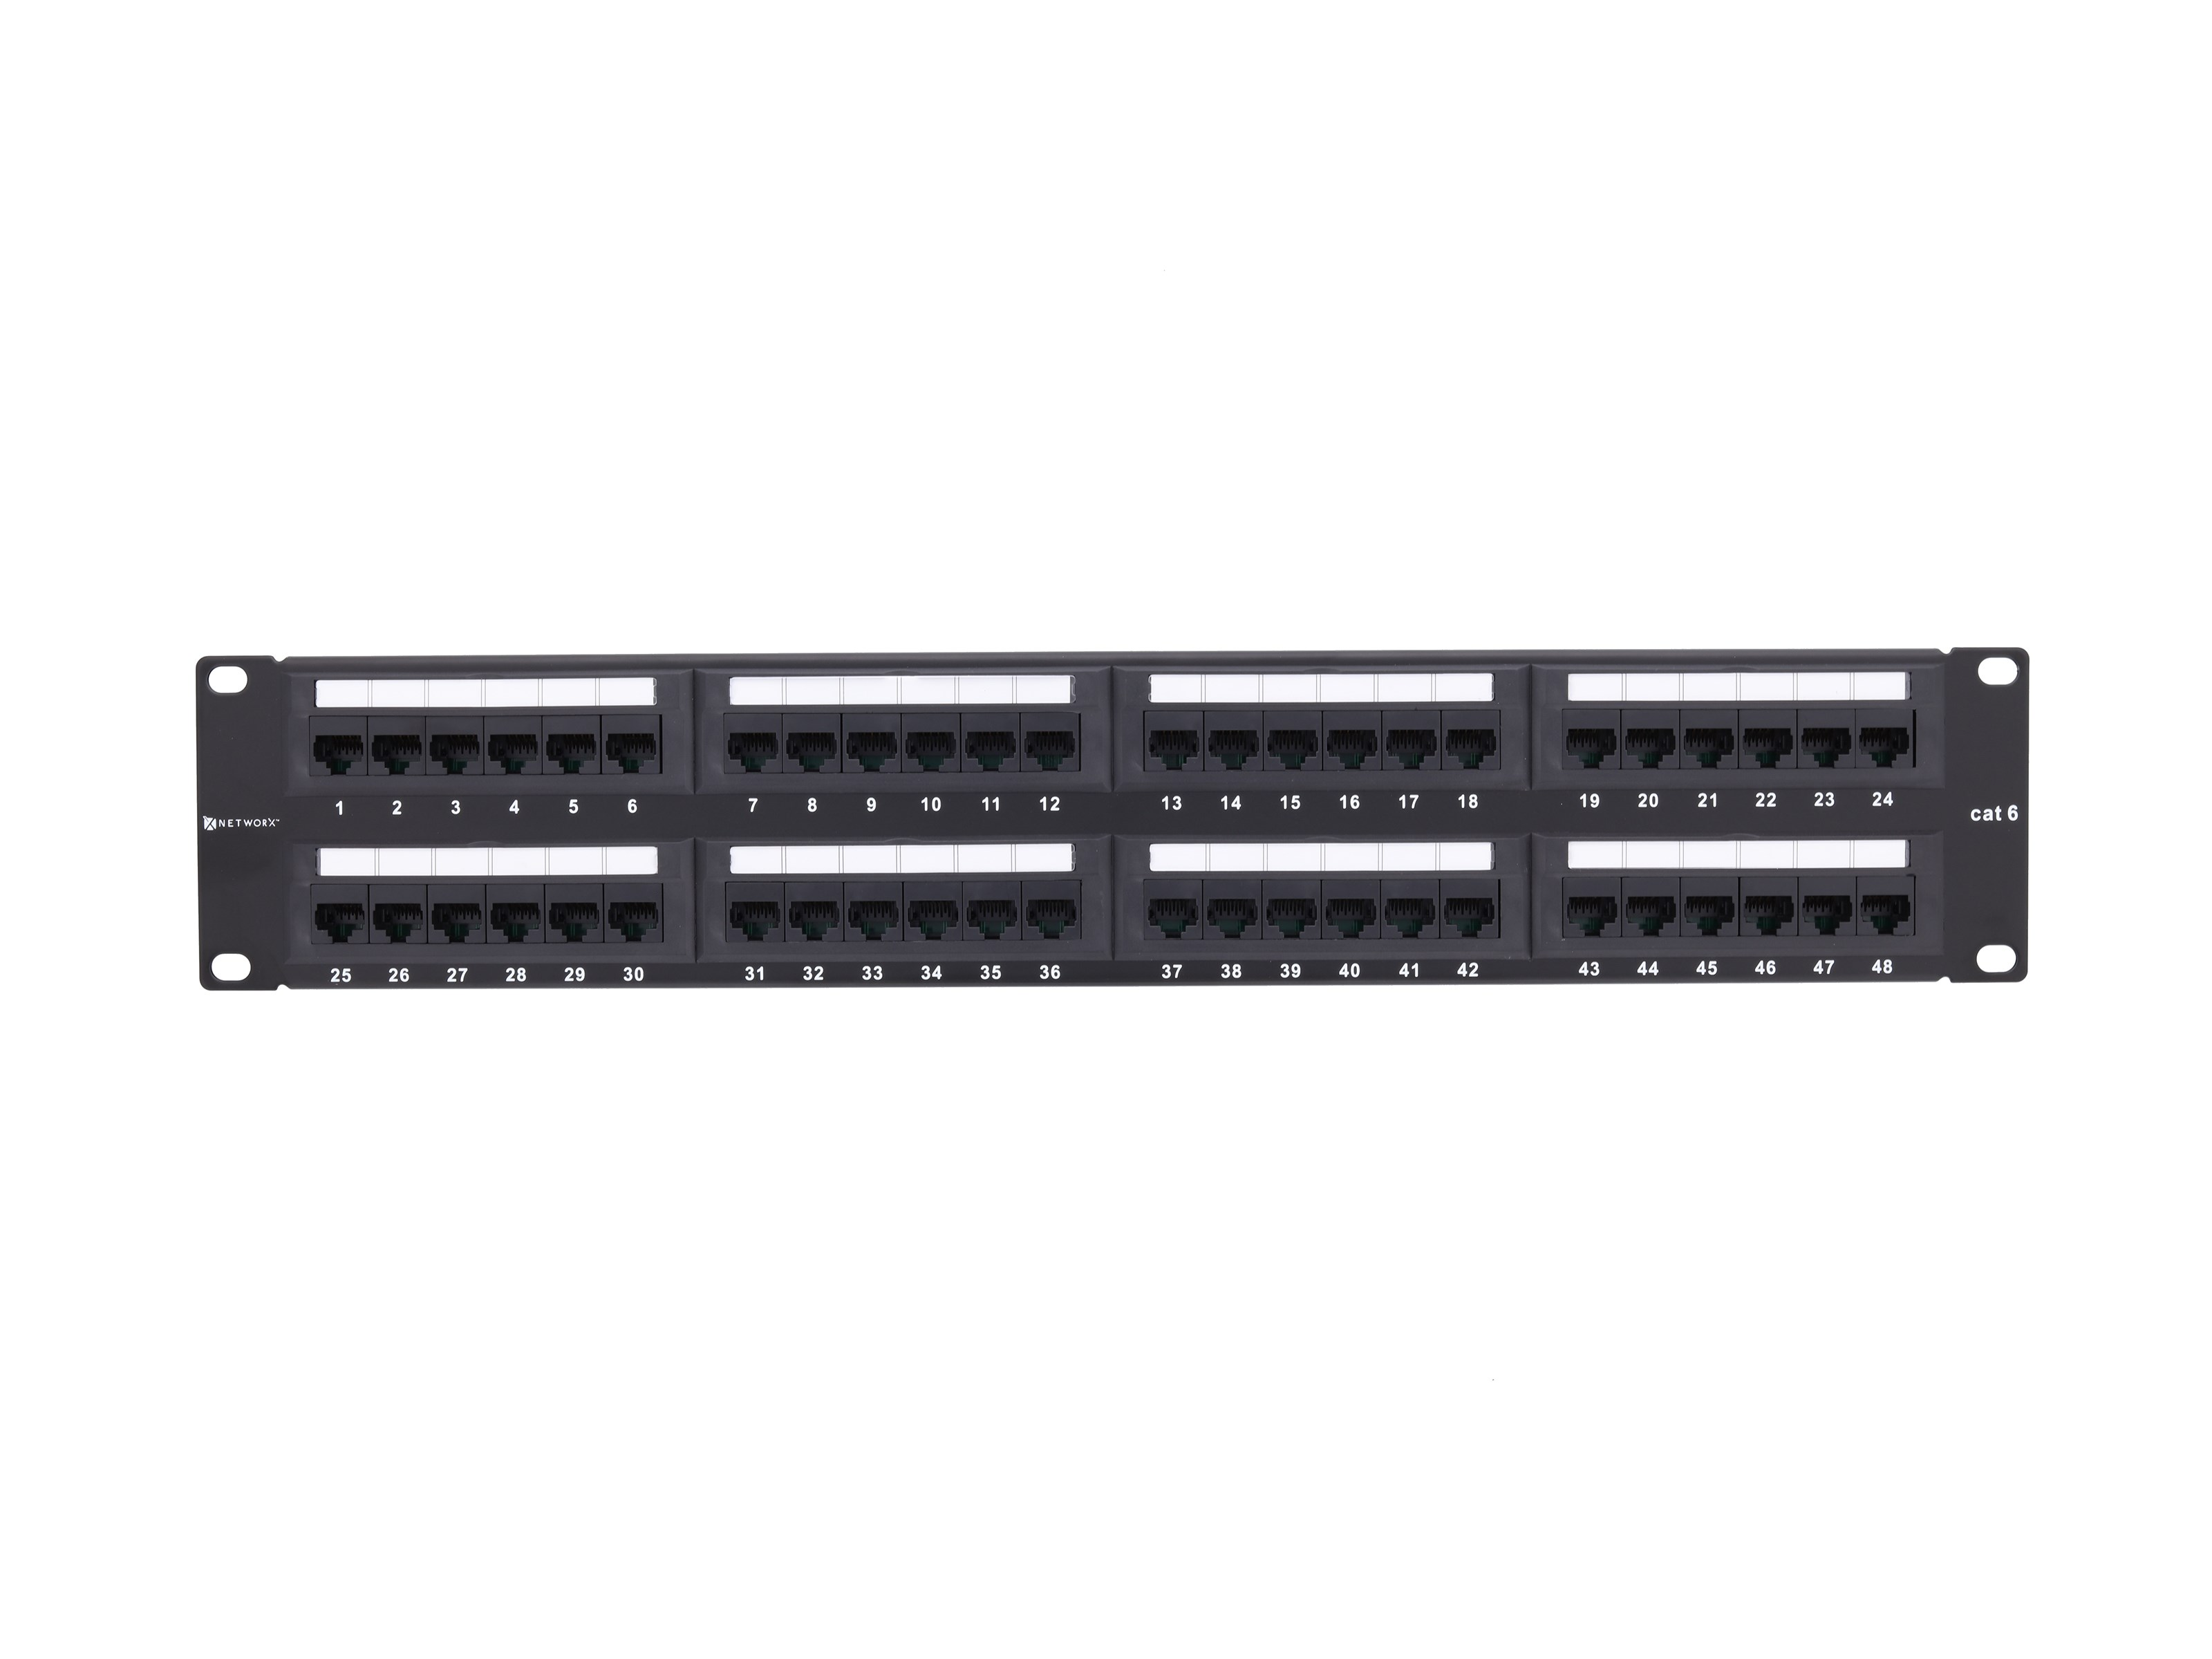 Cat 6 48 Ports Patch Panel Ameleco Best Electrical